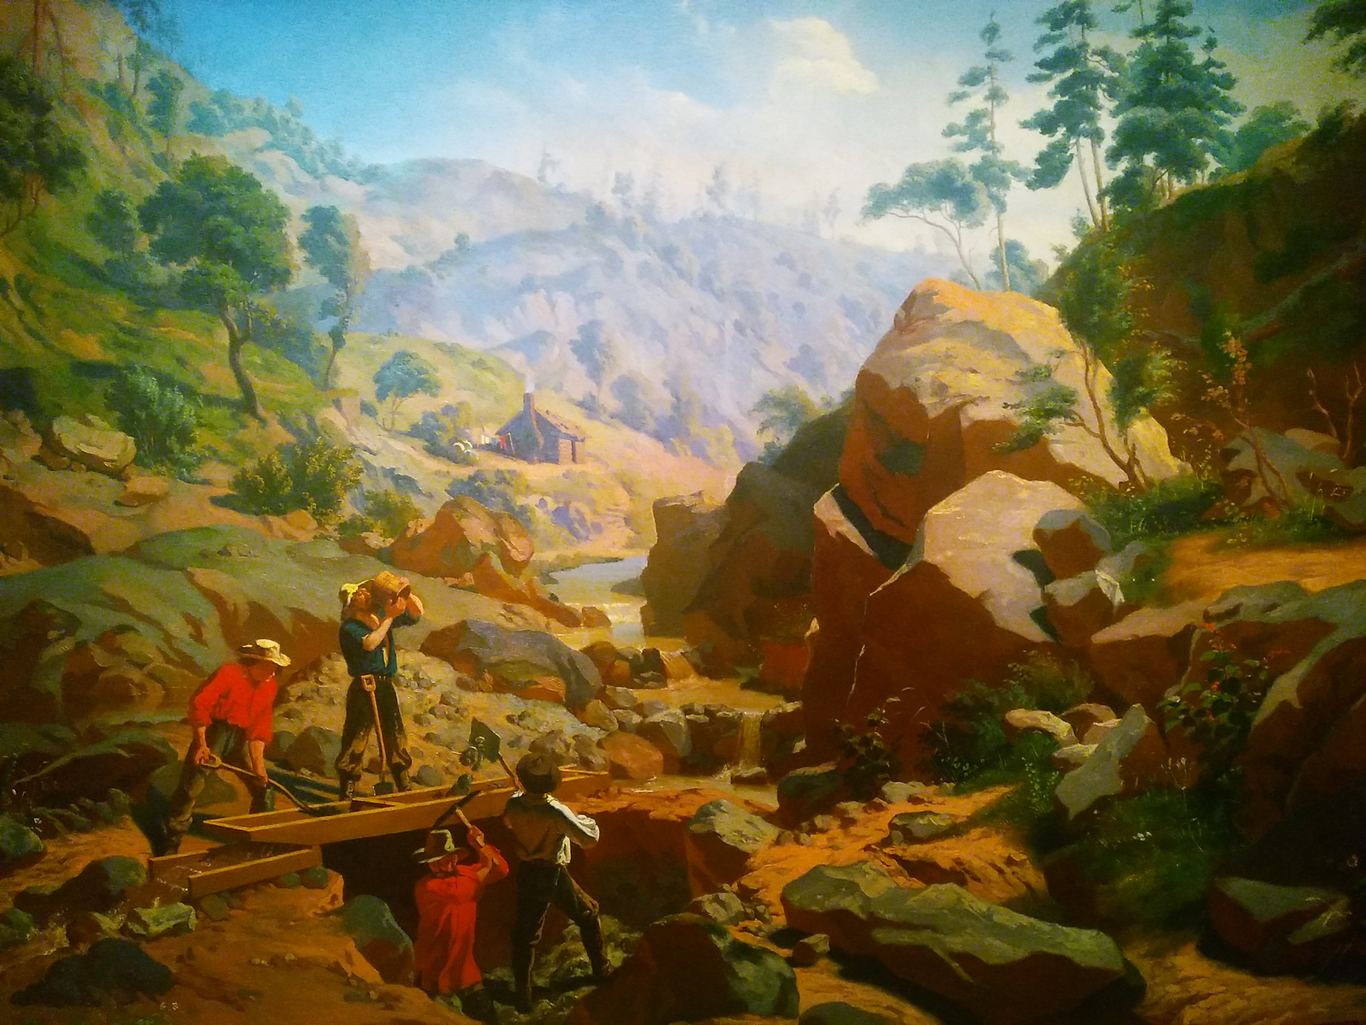 Miners in the Sierras, painted by Charles Christian Nahl in 1851-512